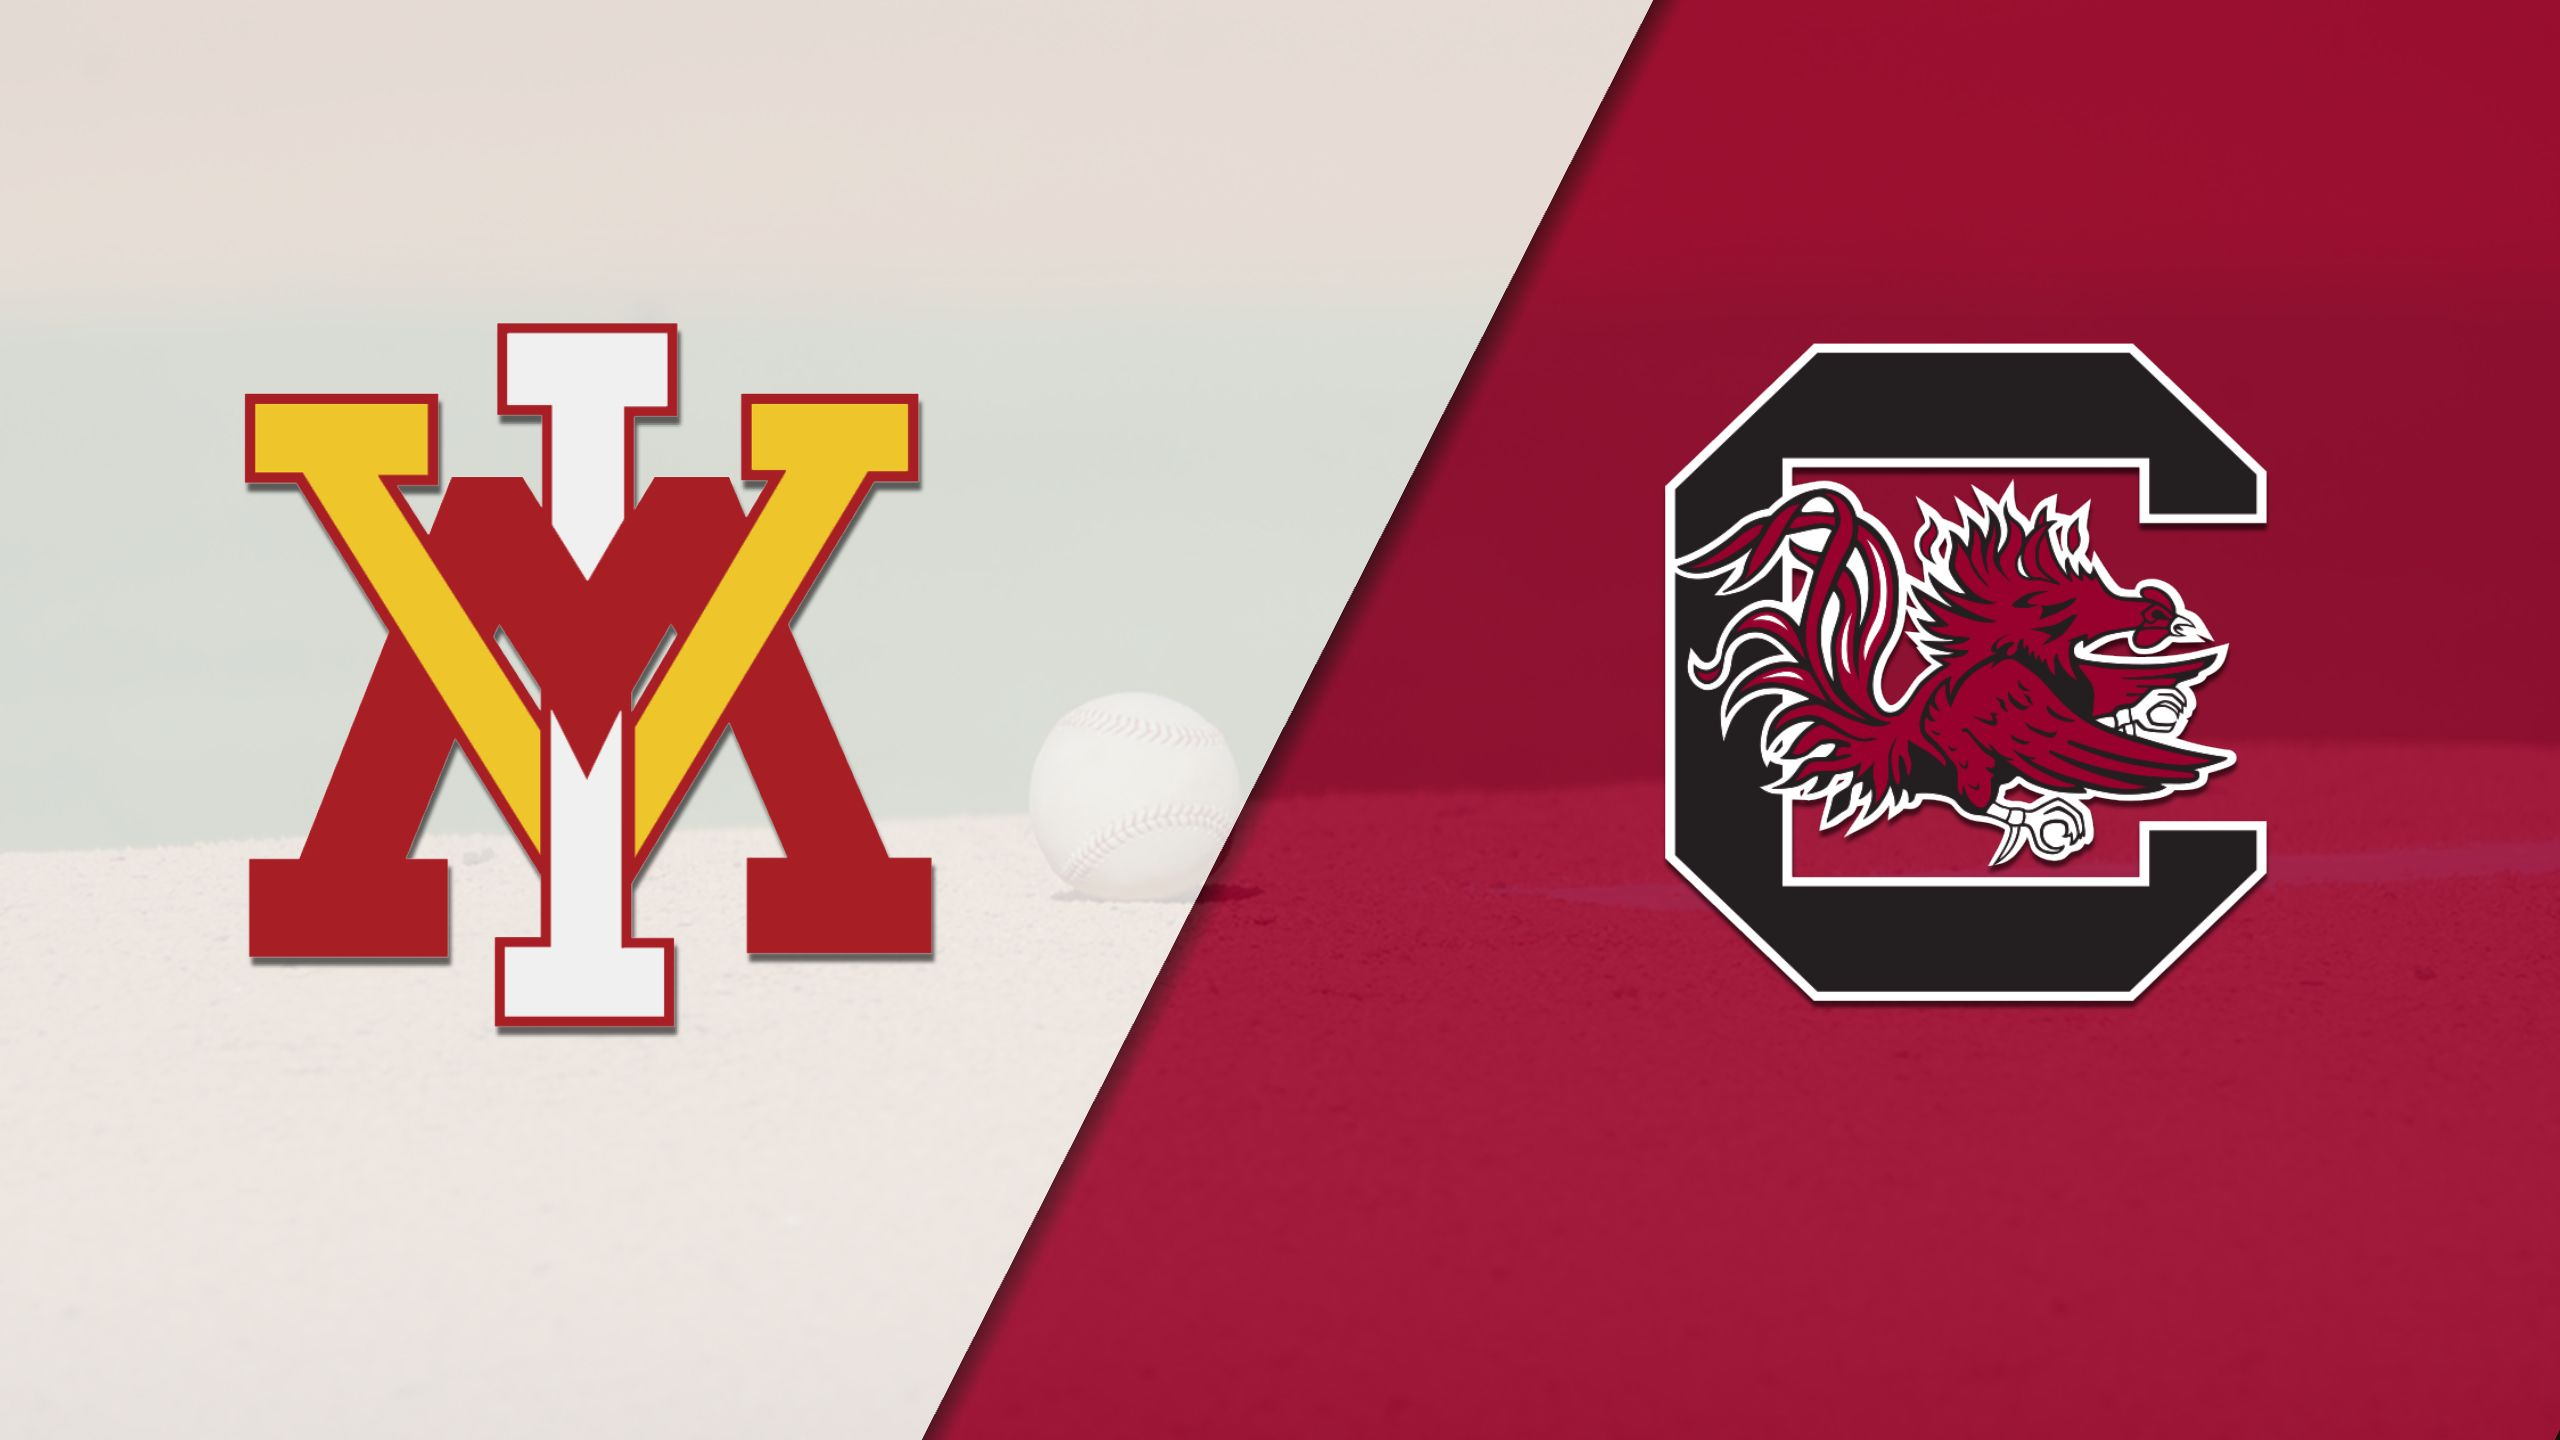 VMI vs. South Carolina (Baseball)